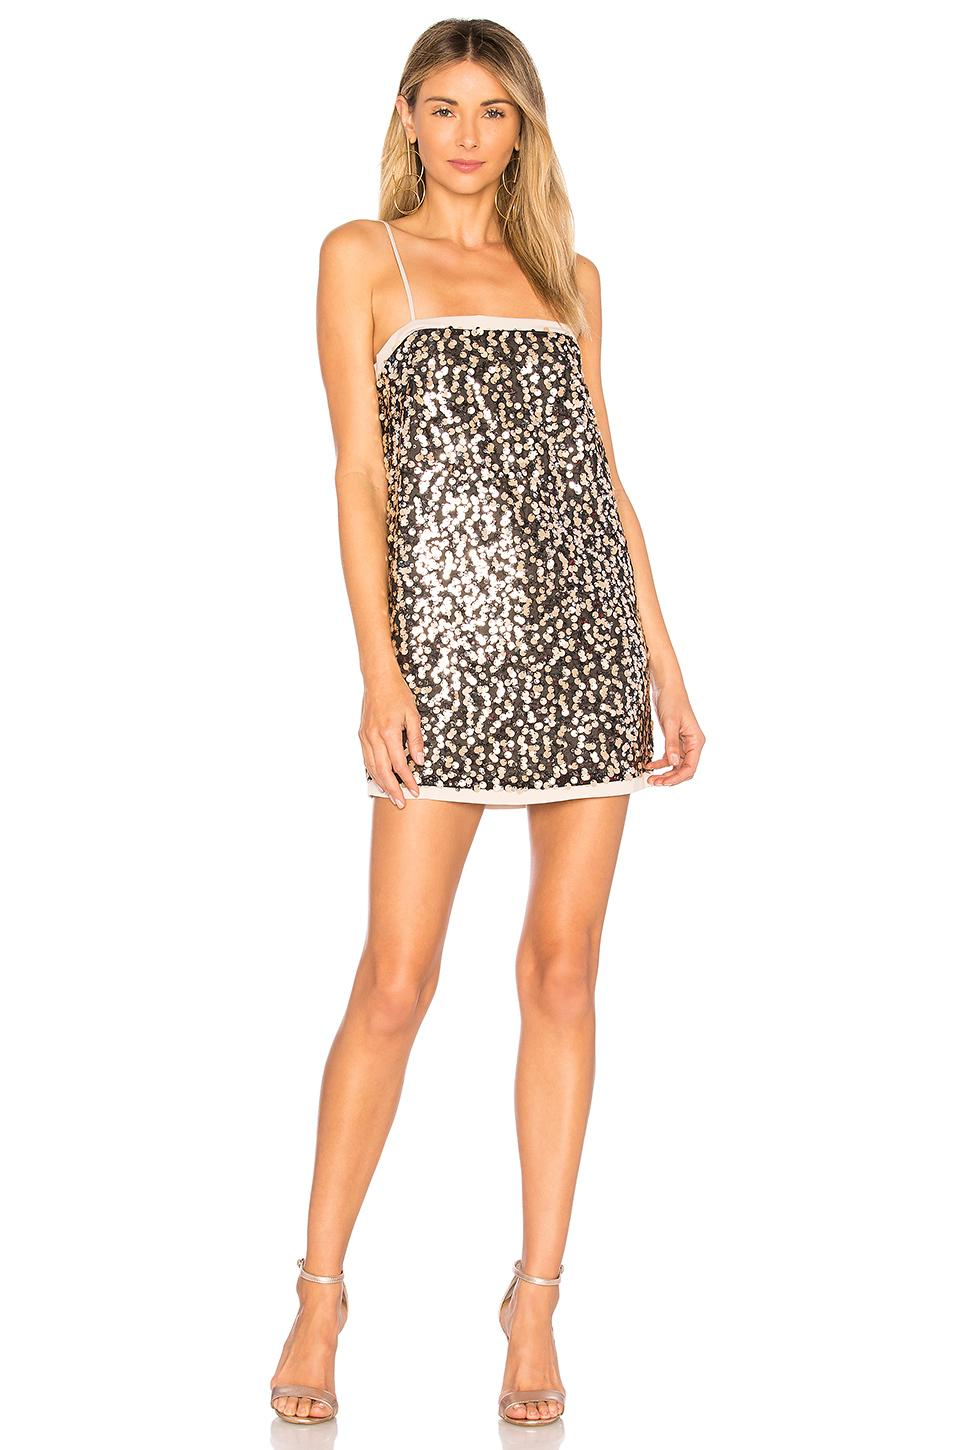 House Of Harlow 1960 X Revolve Kristian Dress In Brown. In Sterling